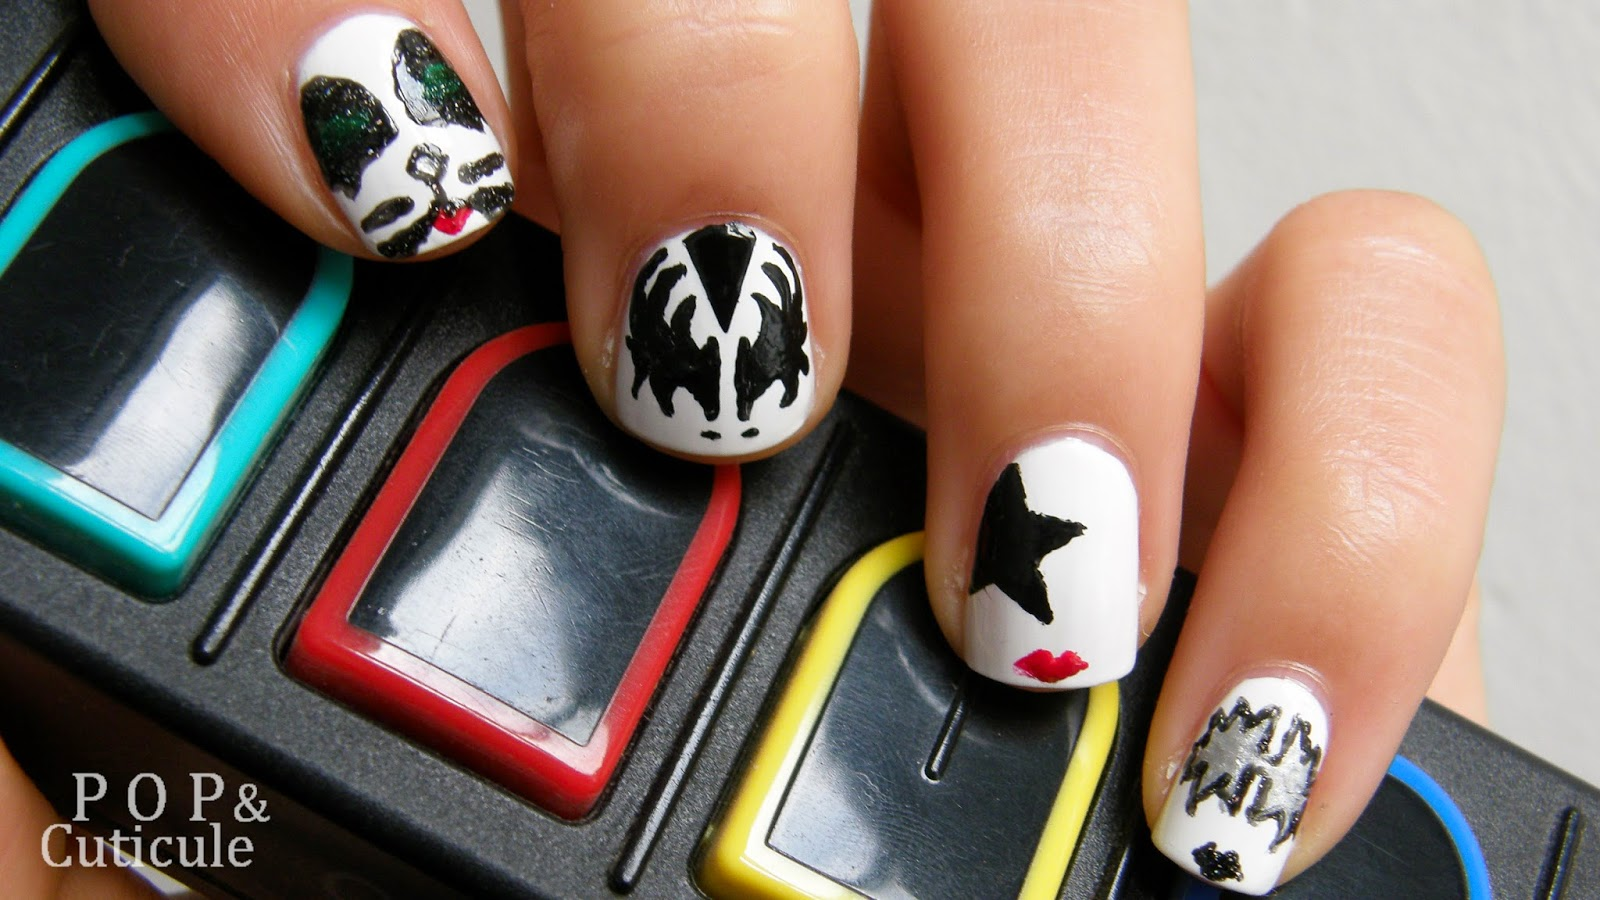 Pop & Cuticule - Nail Art Kiss - Nailstorming